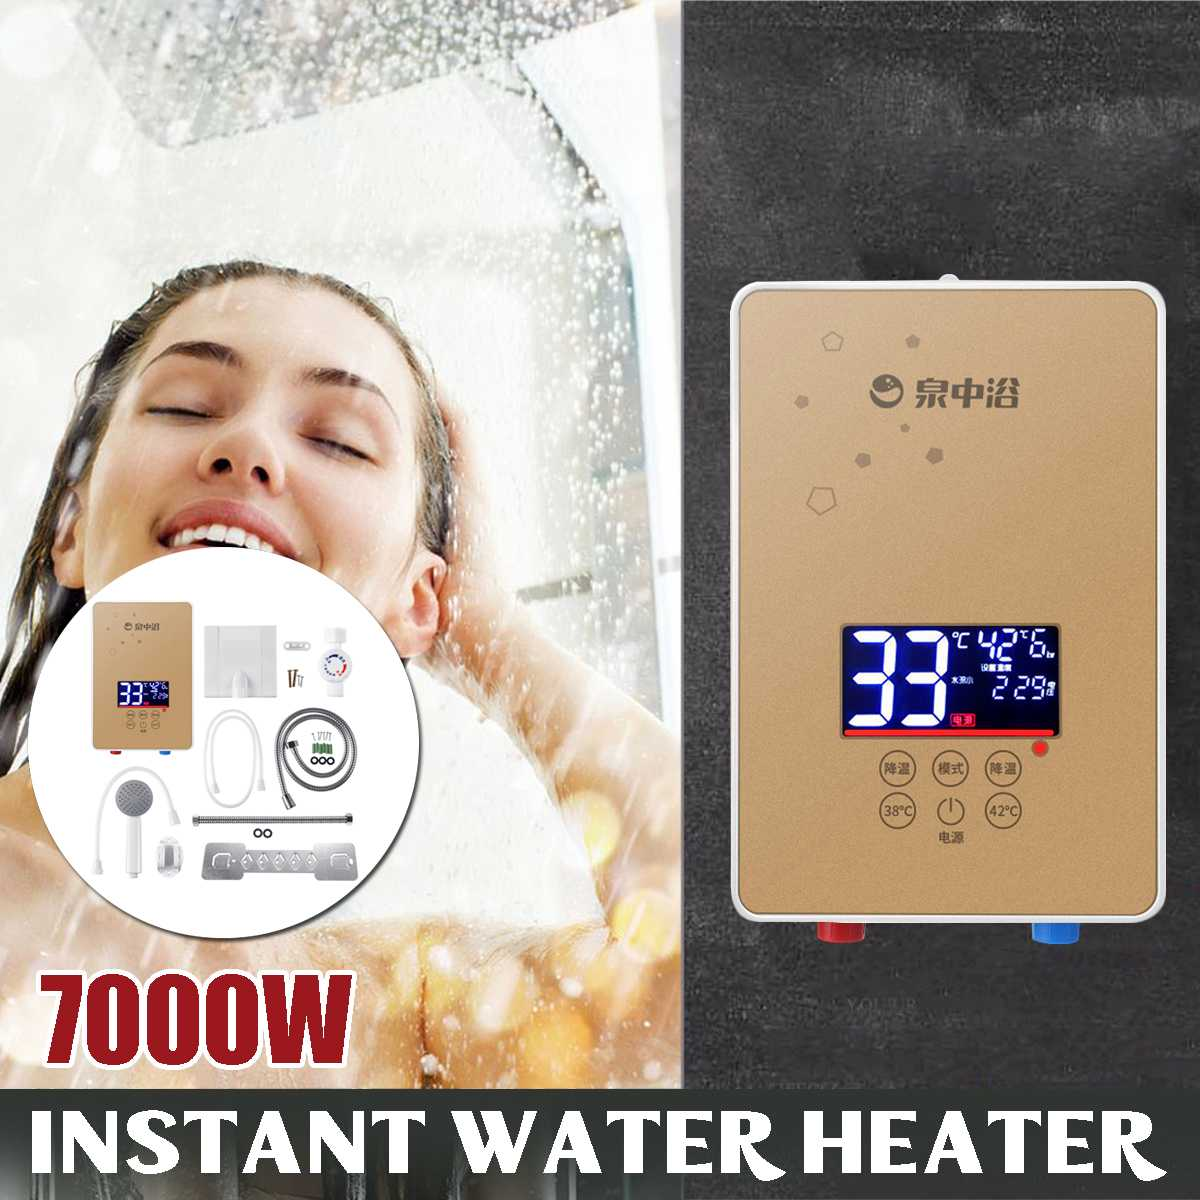 7000W 220V Electric Water Heater Instant Tankless Water Heater 220V  Temperature Display Heating Shower Universal With Hose